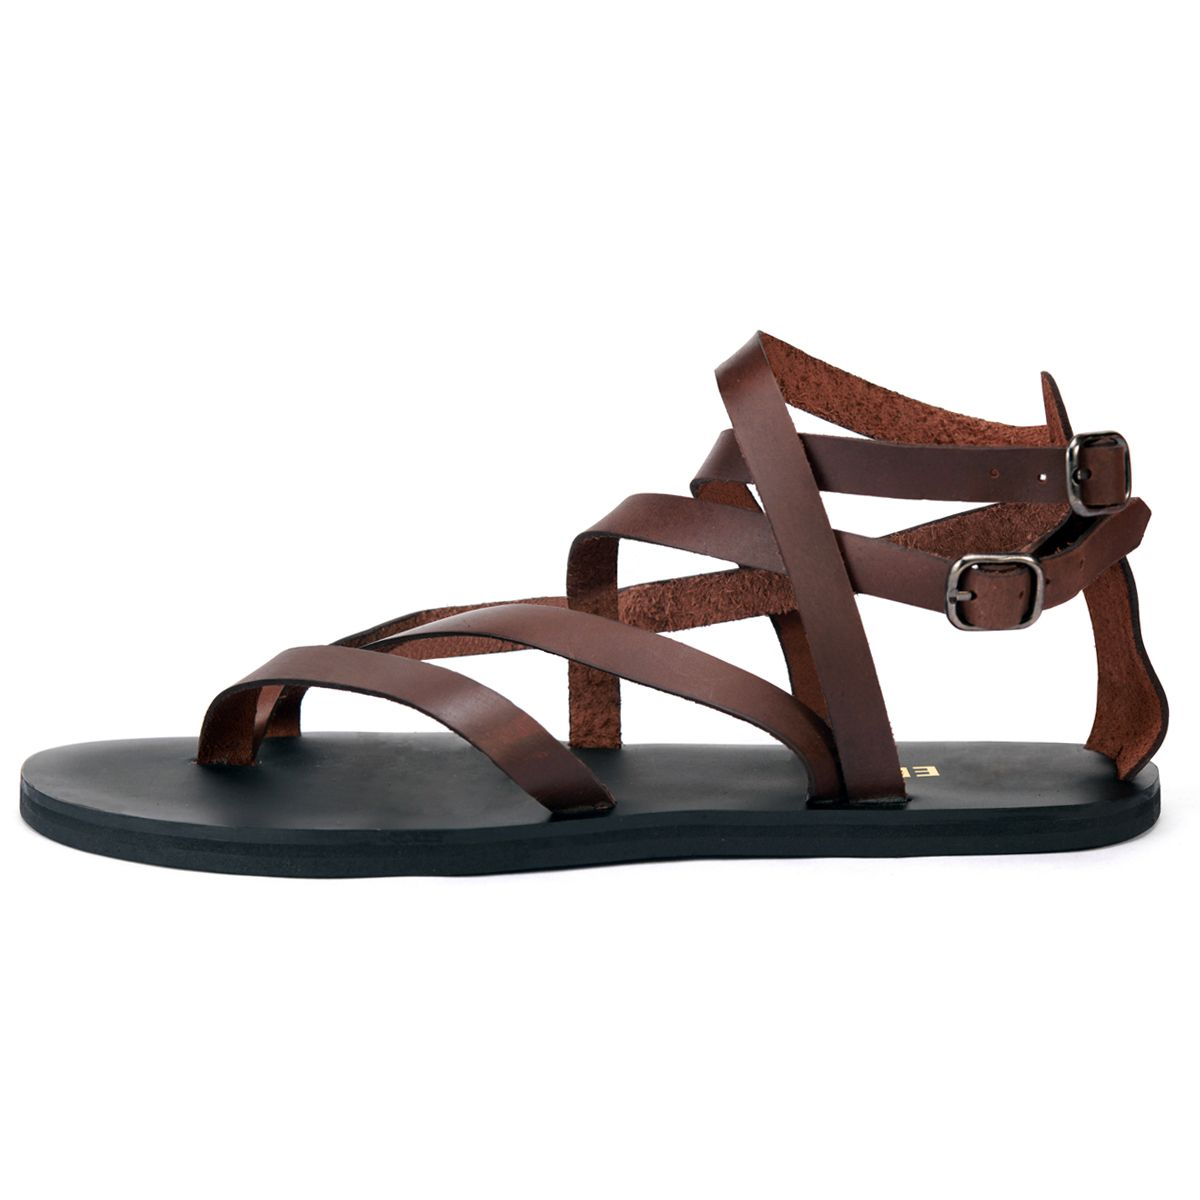 8757b3db6dc42b Gladiator Sandals for Men Price